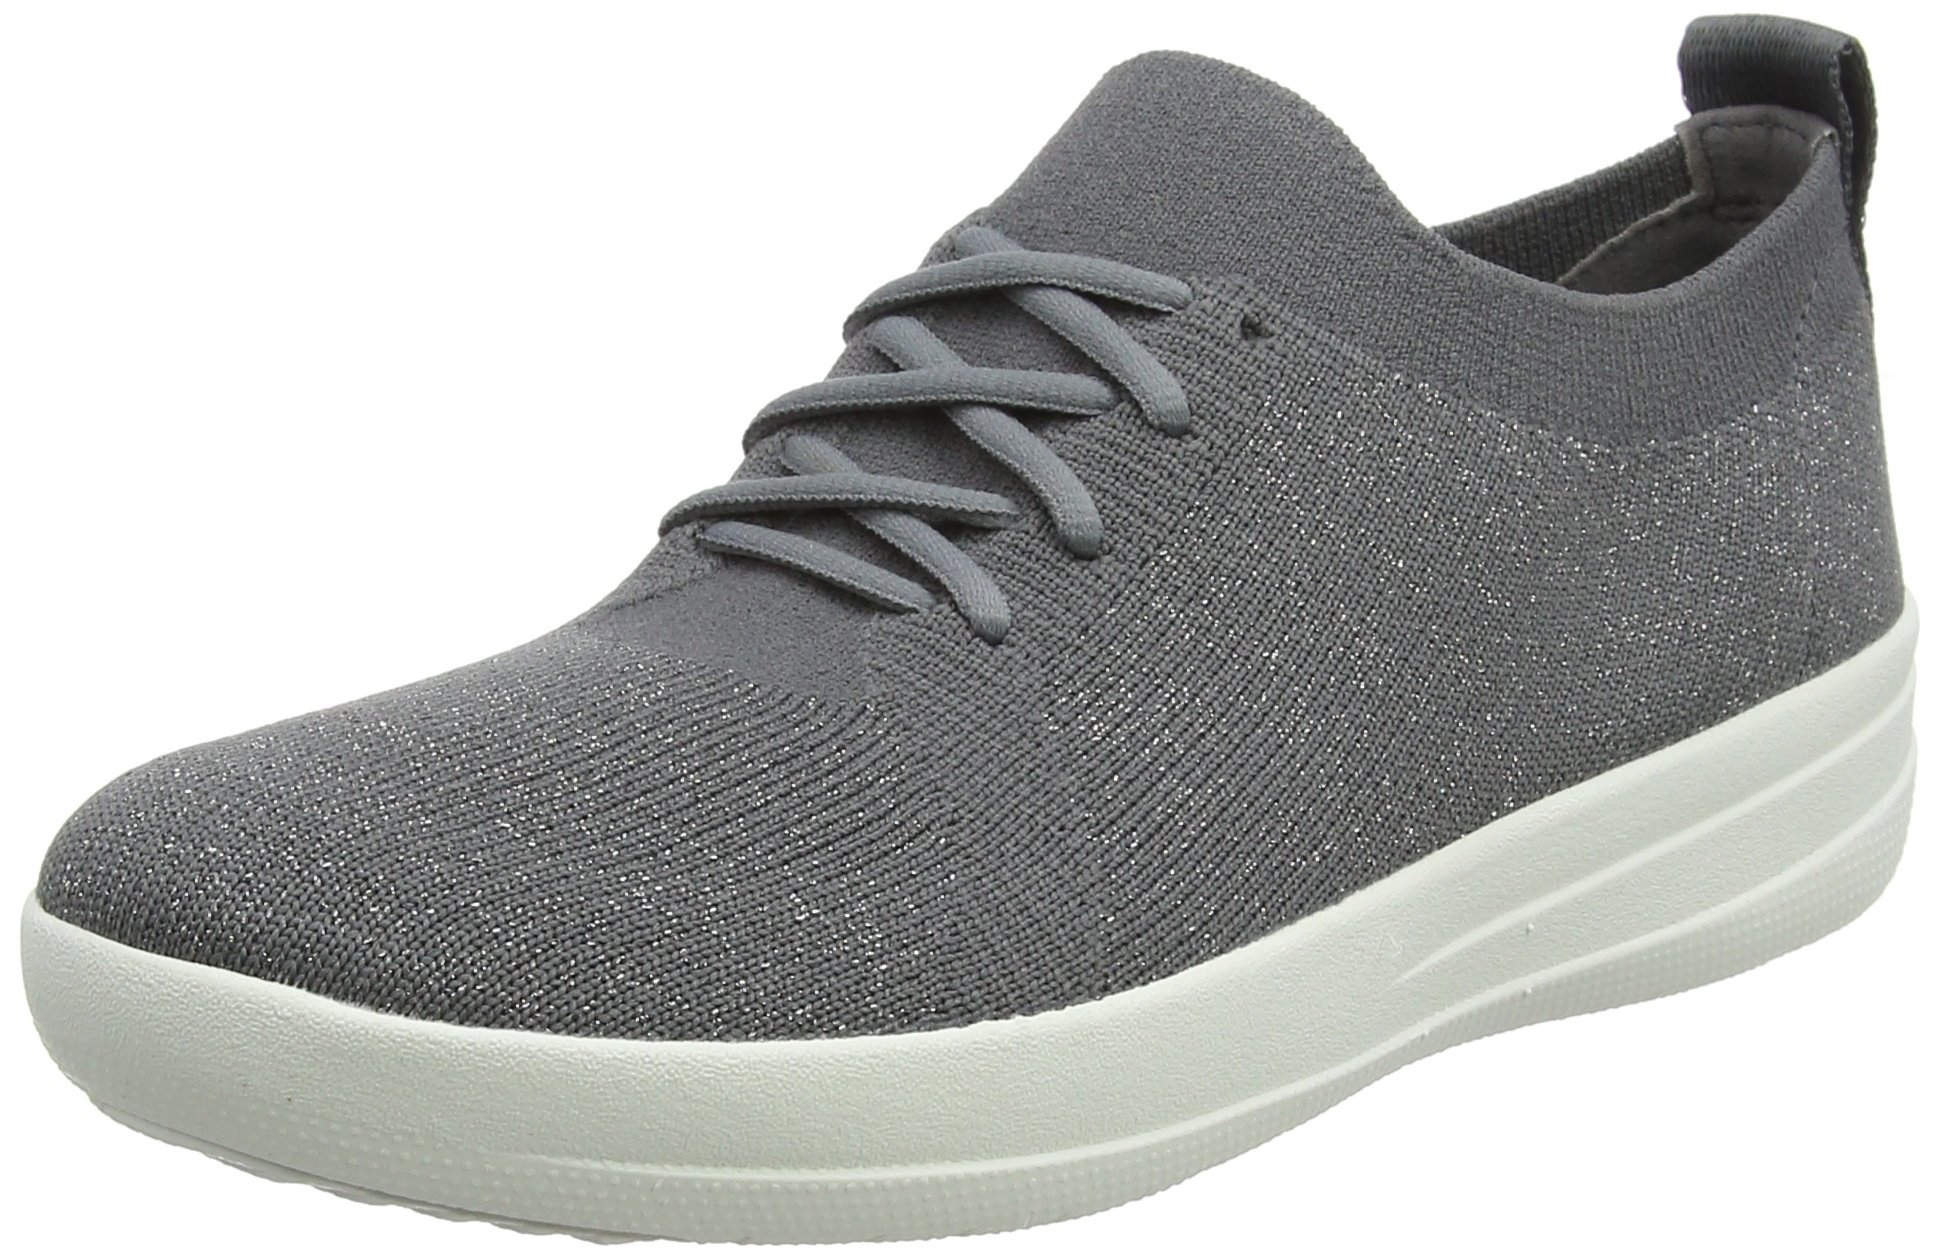 FitFlop Womens F-Sporty Uberknit Charcoal/Metallic Pewter Sneaker - 10